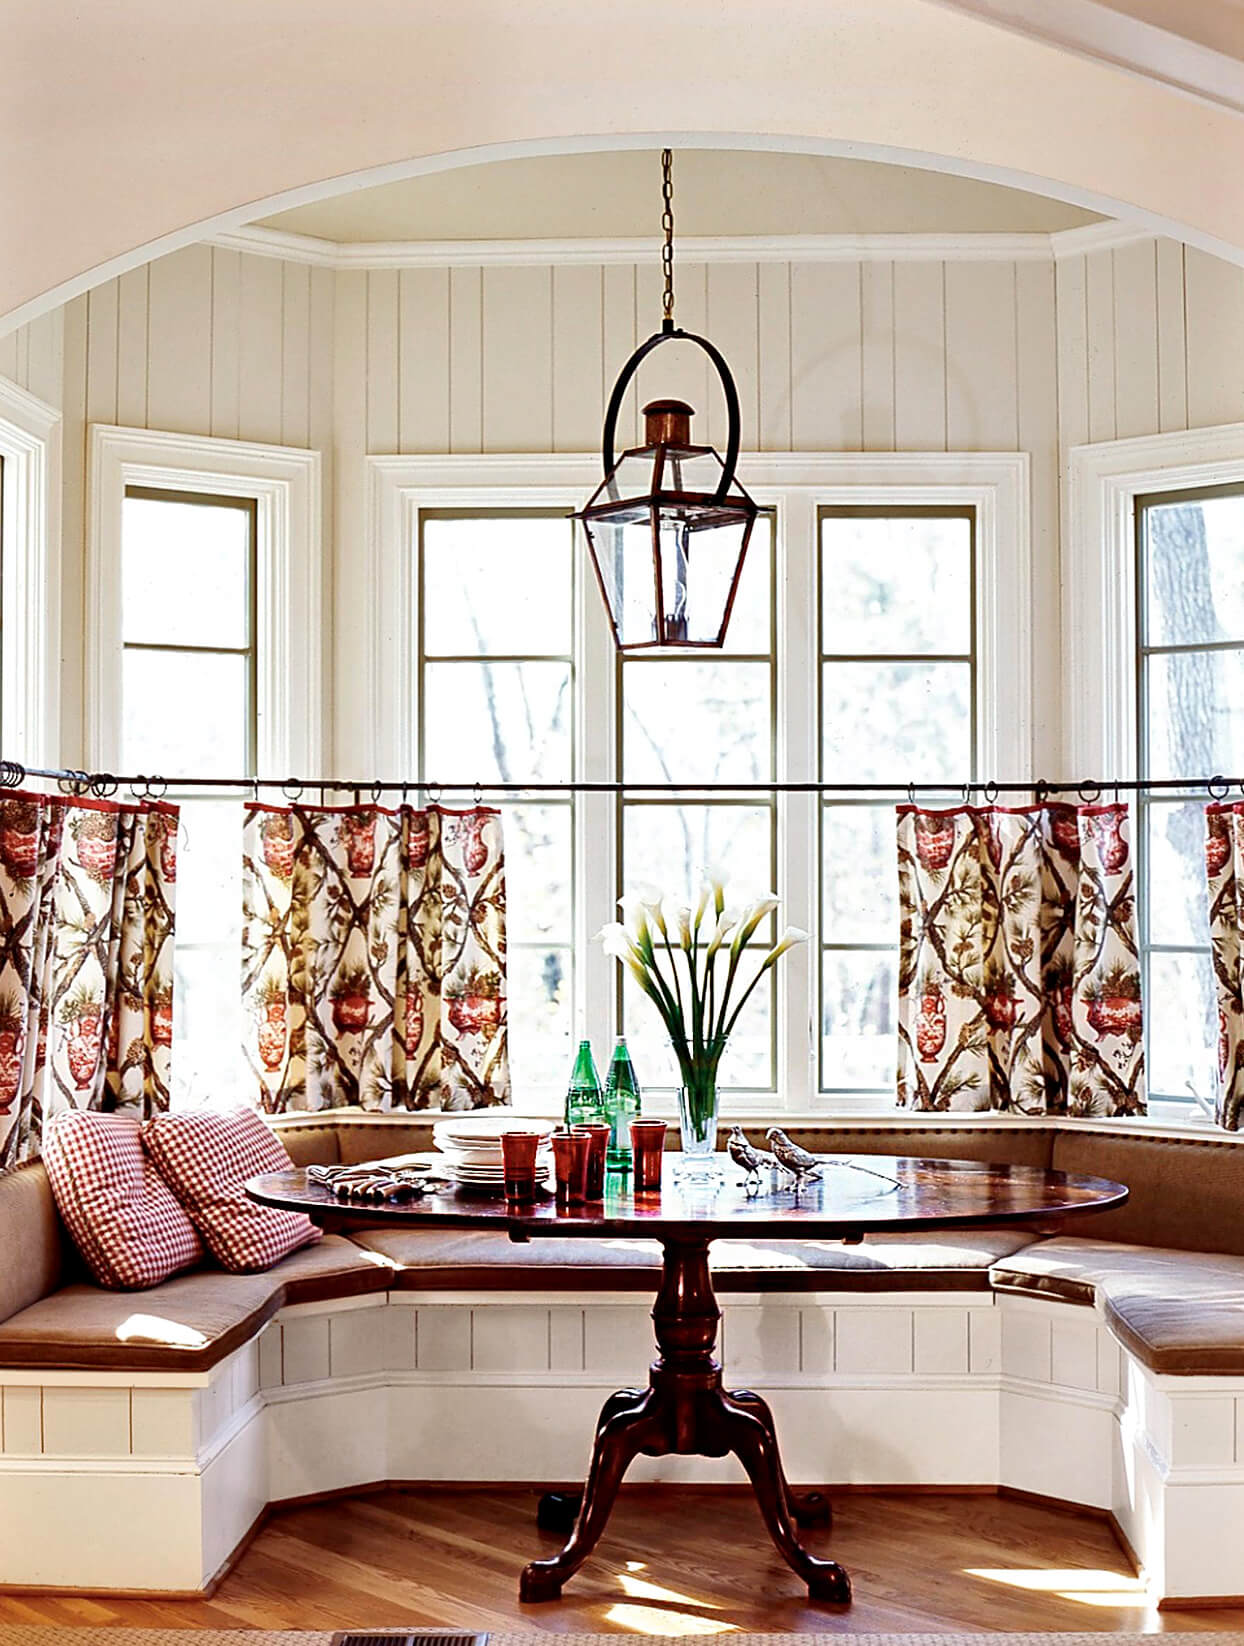 OVAL DINING TABLE DESIGN IDEAS FOR SMALL SPACE